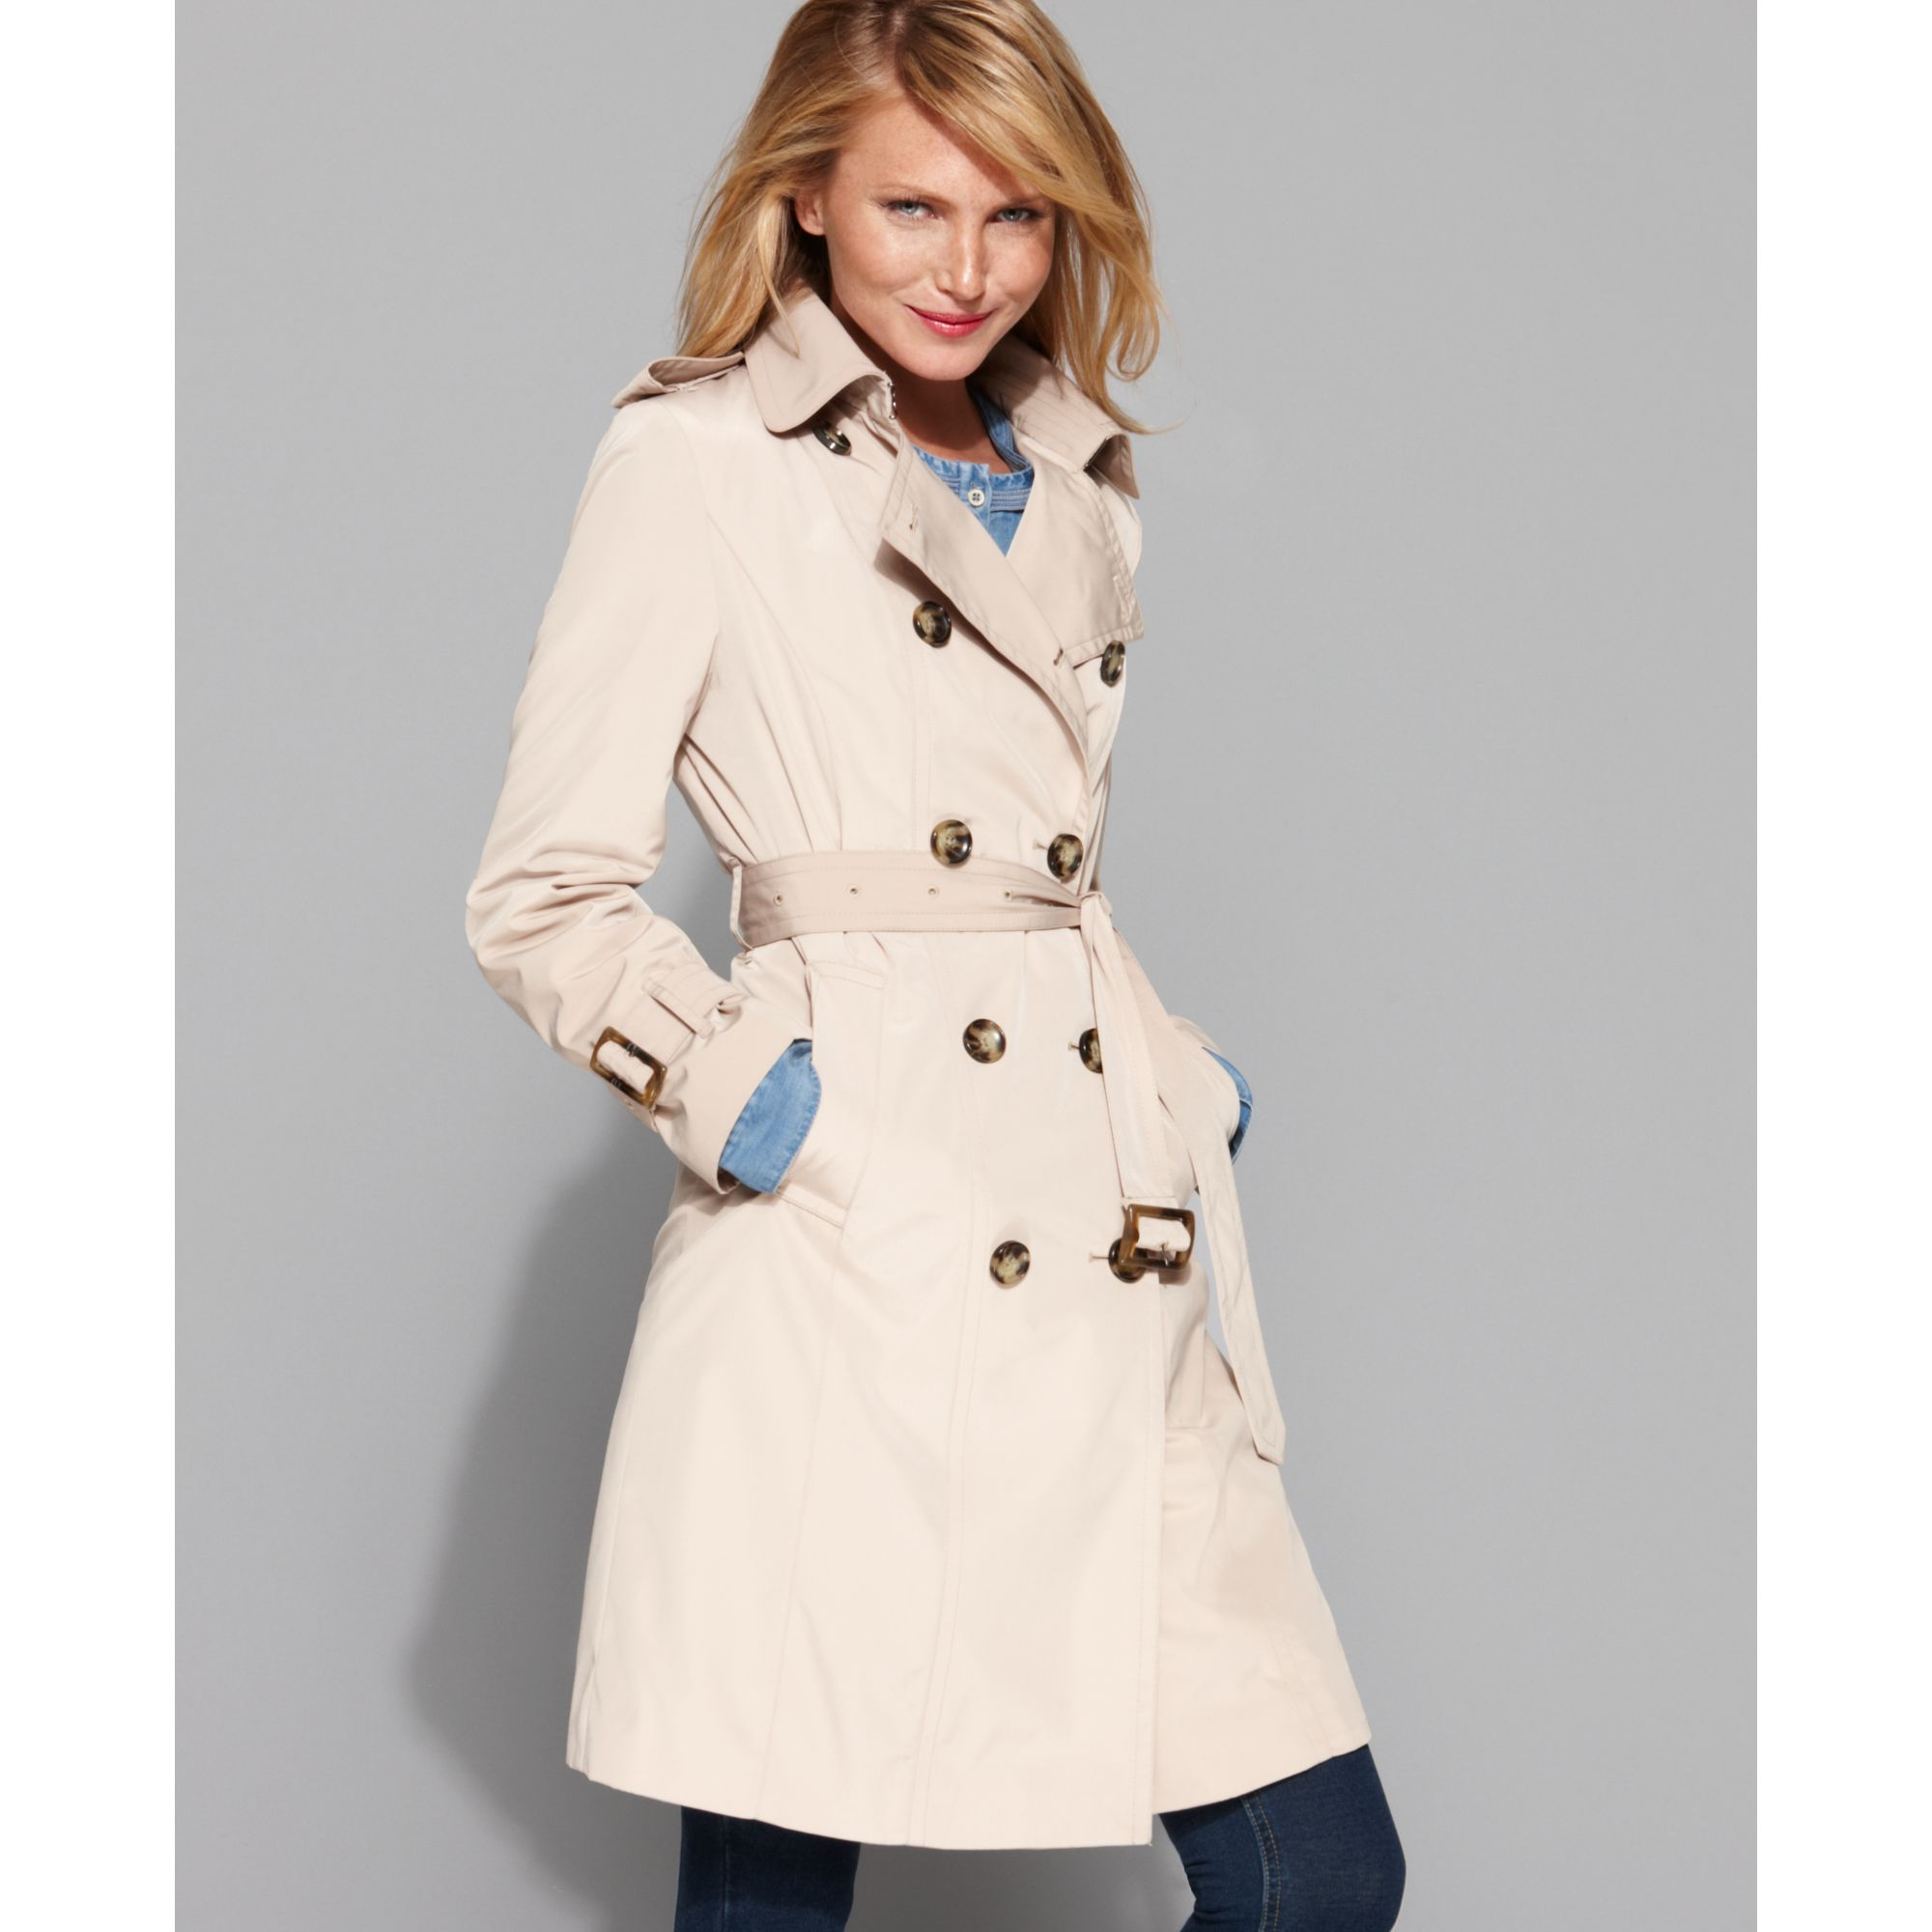 ddfed49dfd232 Lyst - London Fog Double Breasted Belted Trench Coat in Natural